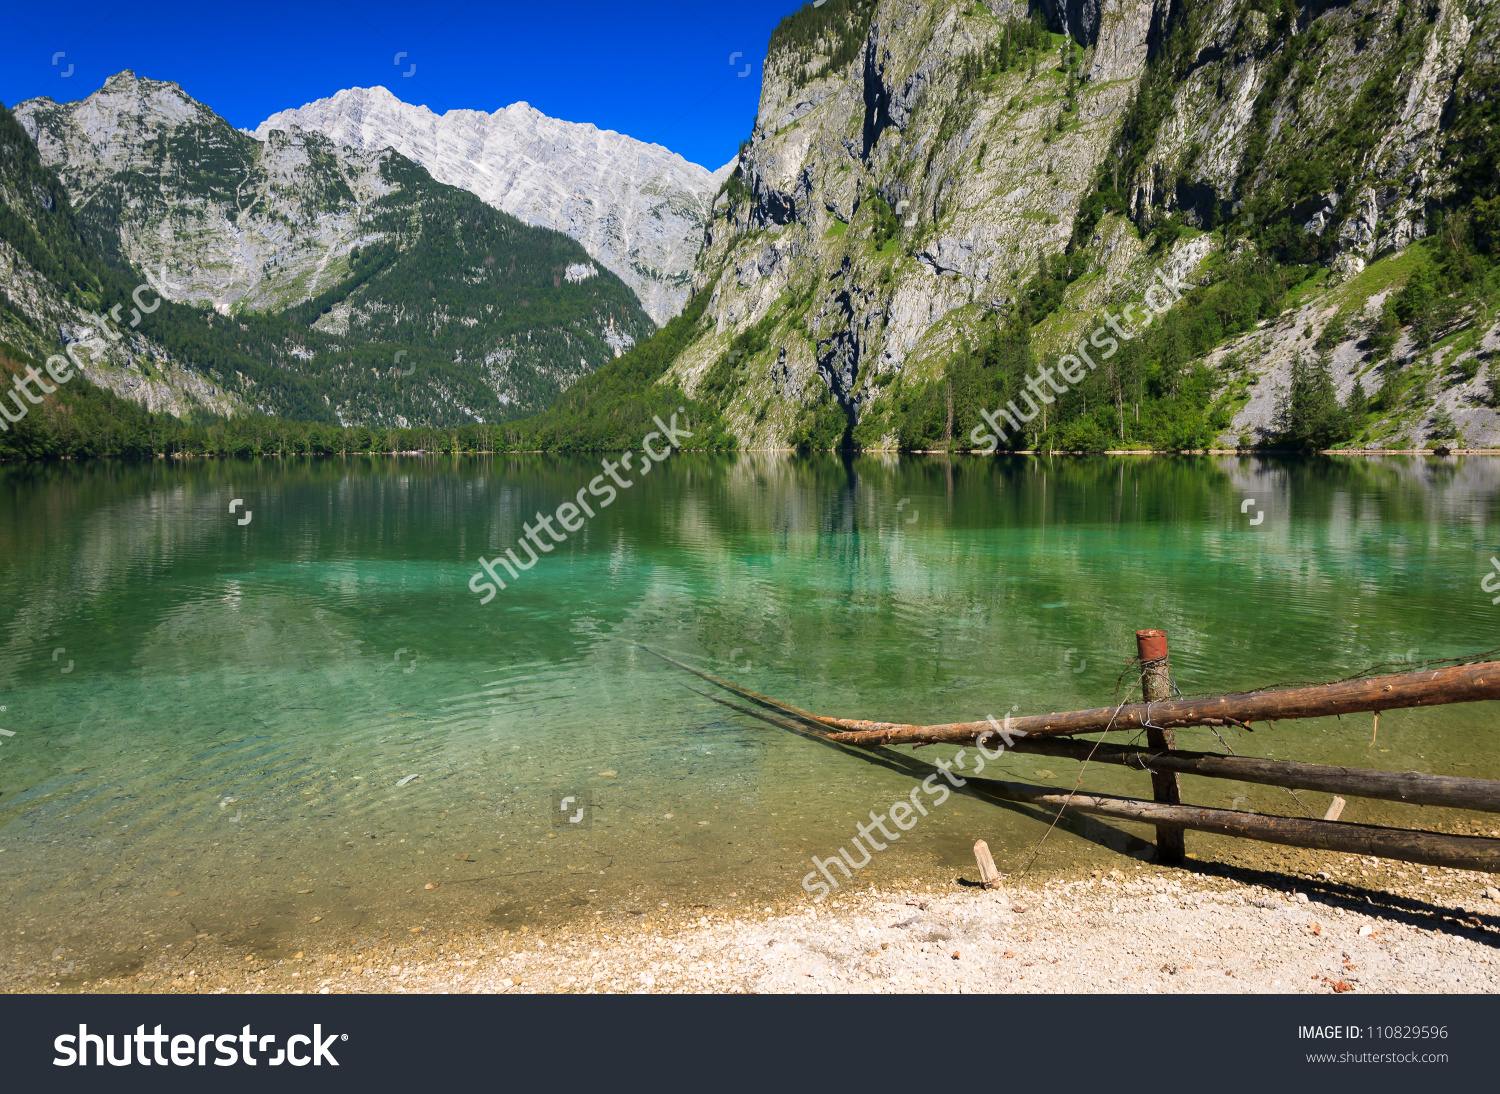 Green Water Of Obersee Mountain Lake, Berchtesgaden National Park.